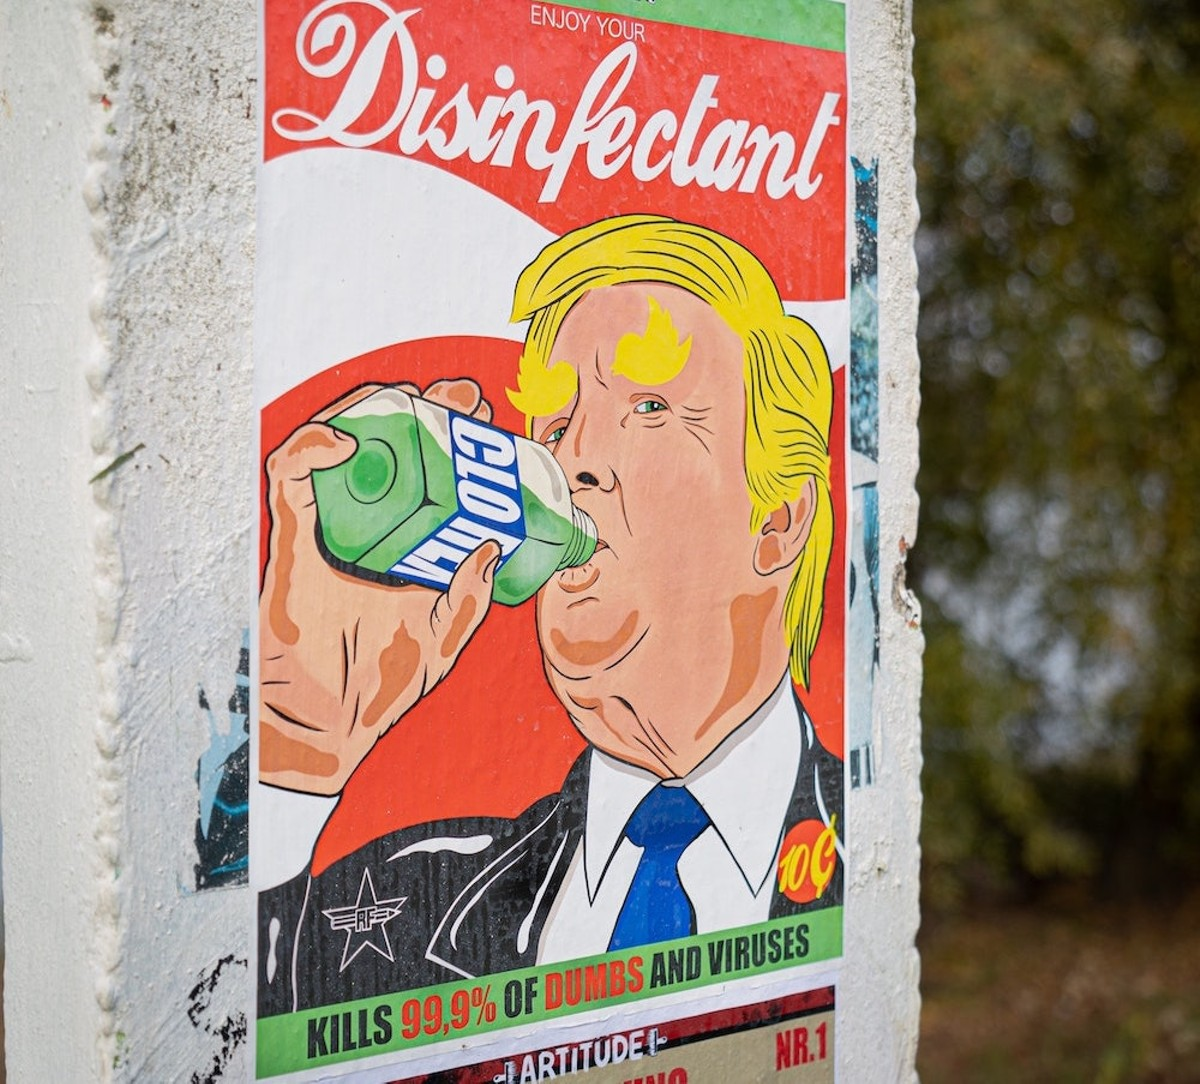 """Poster of an illustration showing Donald Trump drinking """"Clorex"""" with text """"Enjoy your Disinfectant — kills 99.9% of dumbs and viruses"""""""